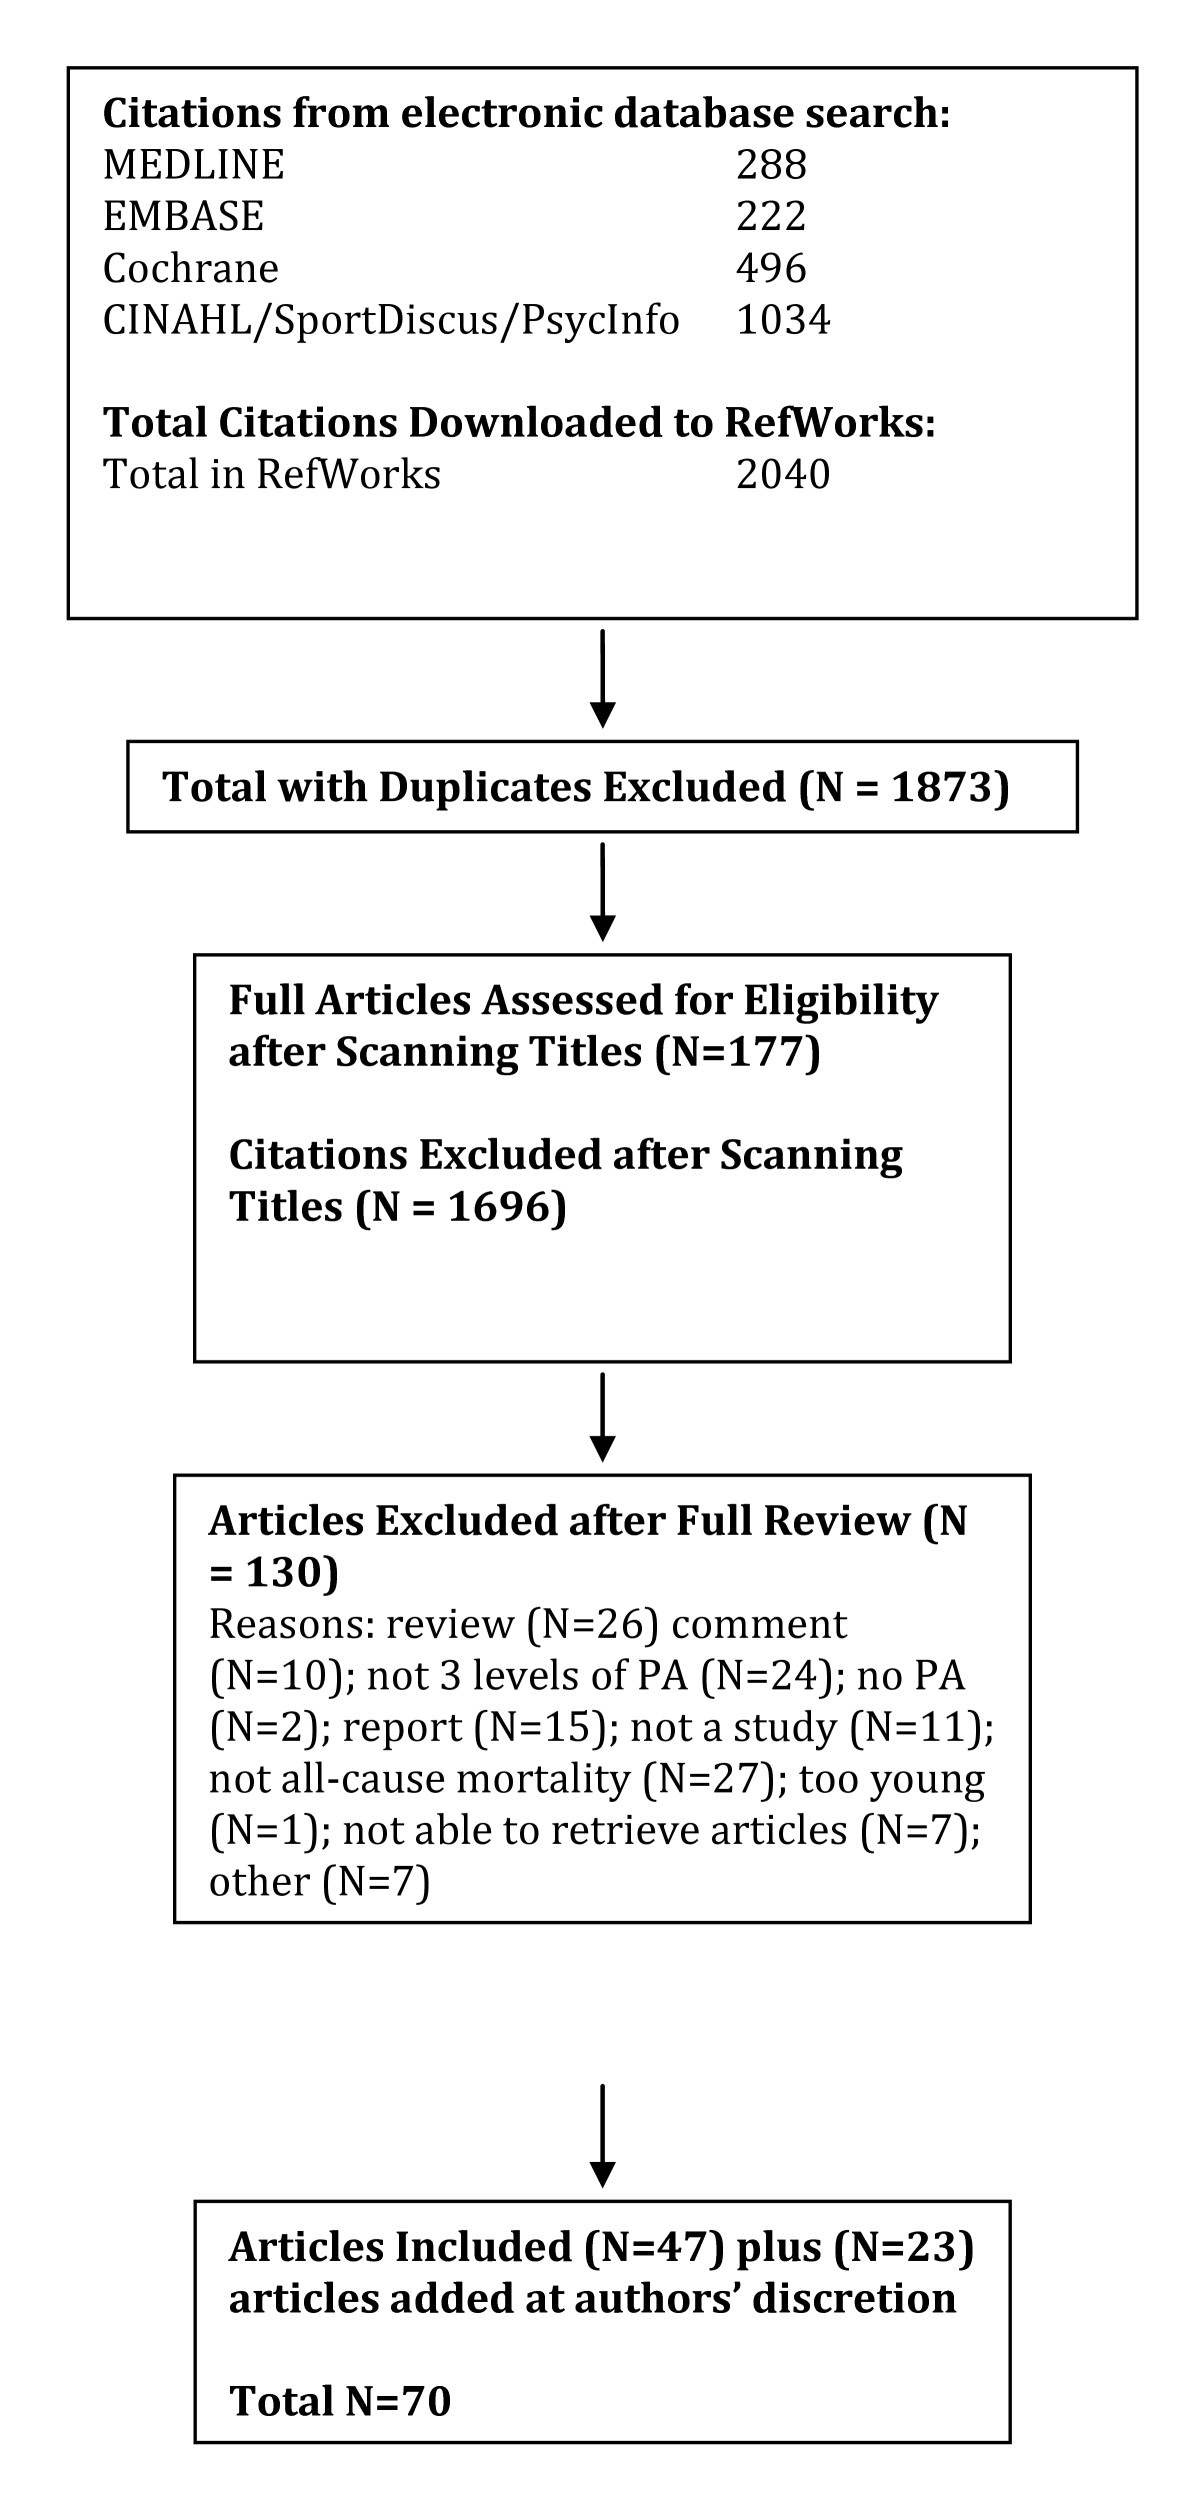 http://static-content.springer.com/image/art%3A10.1186%2F1479-5868-7-39/MediaObjects/12966_2009_Article_345_Fig2_HTML.jpg